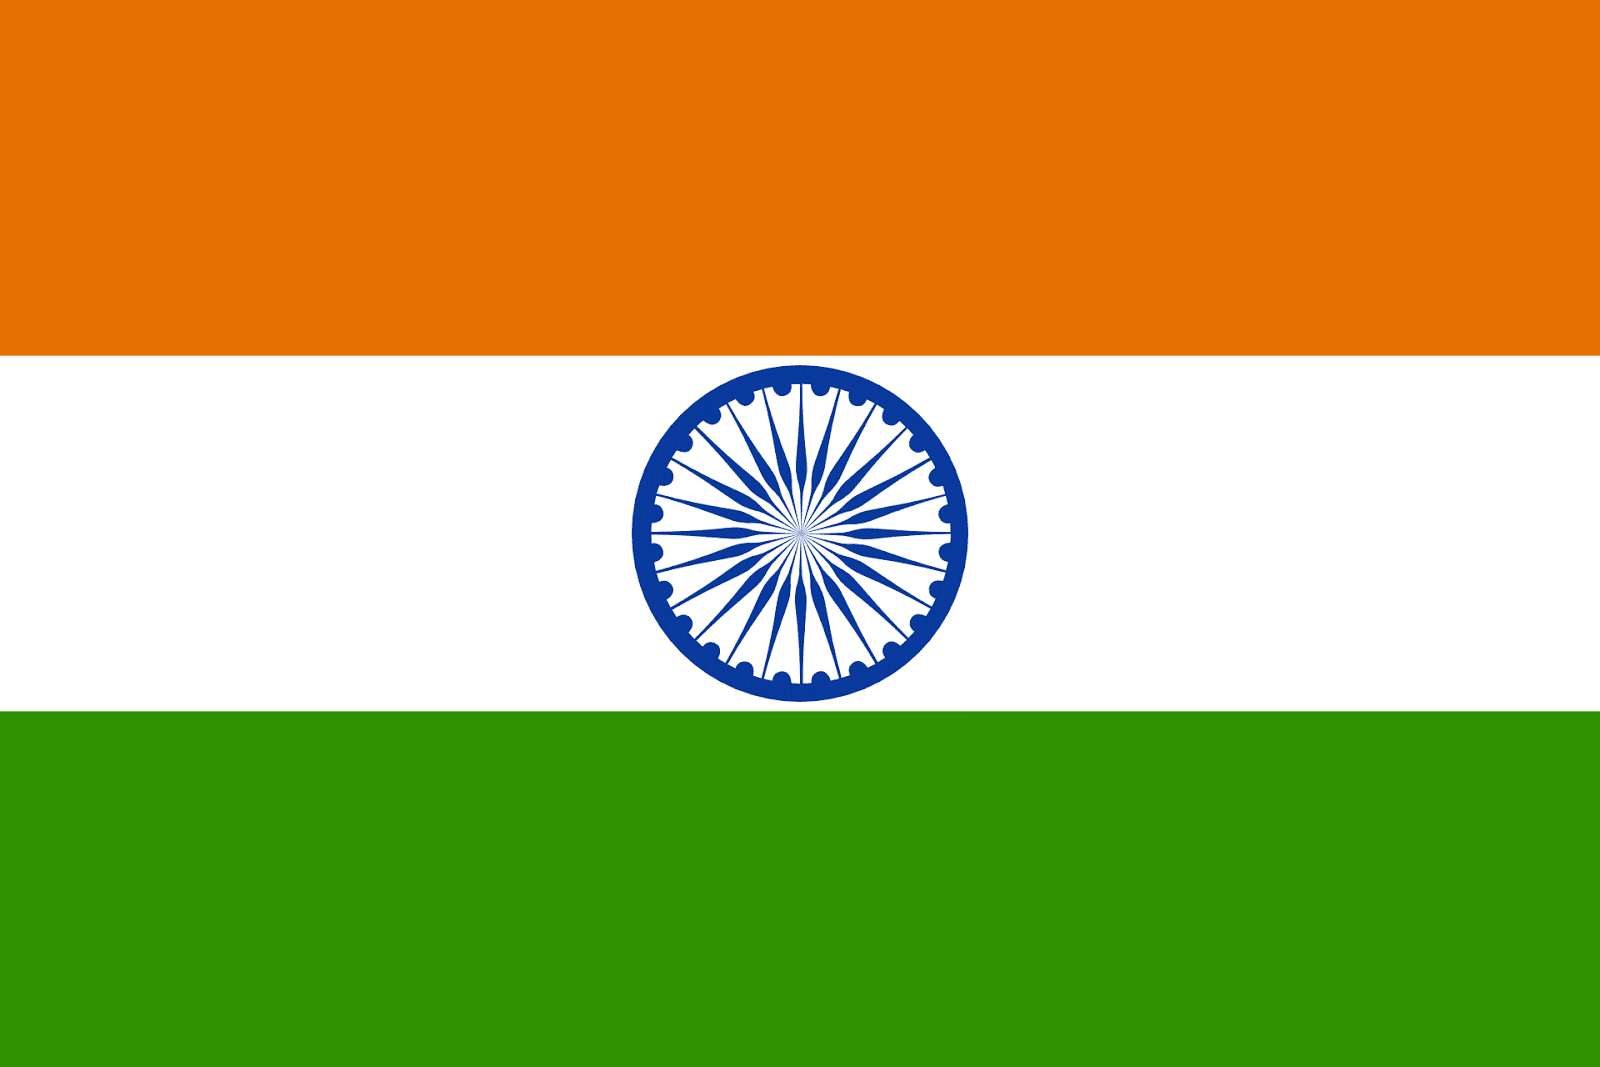 Indian Flag Images Wallpapers Download Indian%2BFlag%2BHD%2BWallpapers%2BDownload